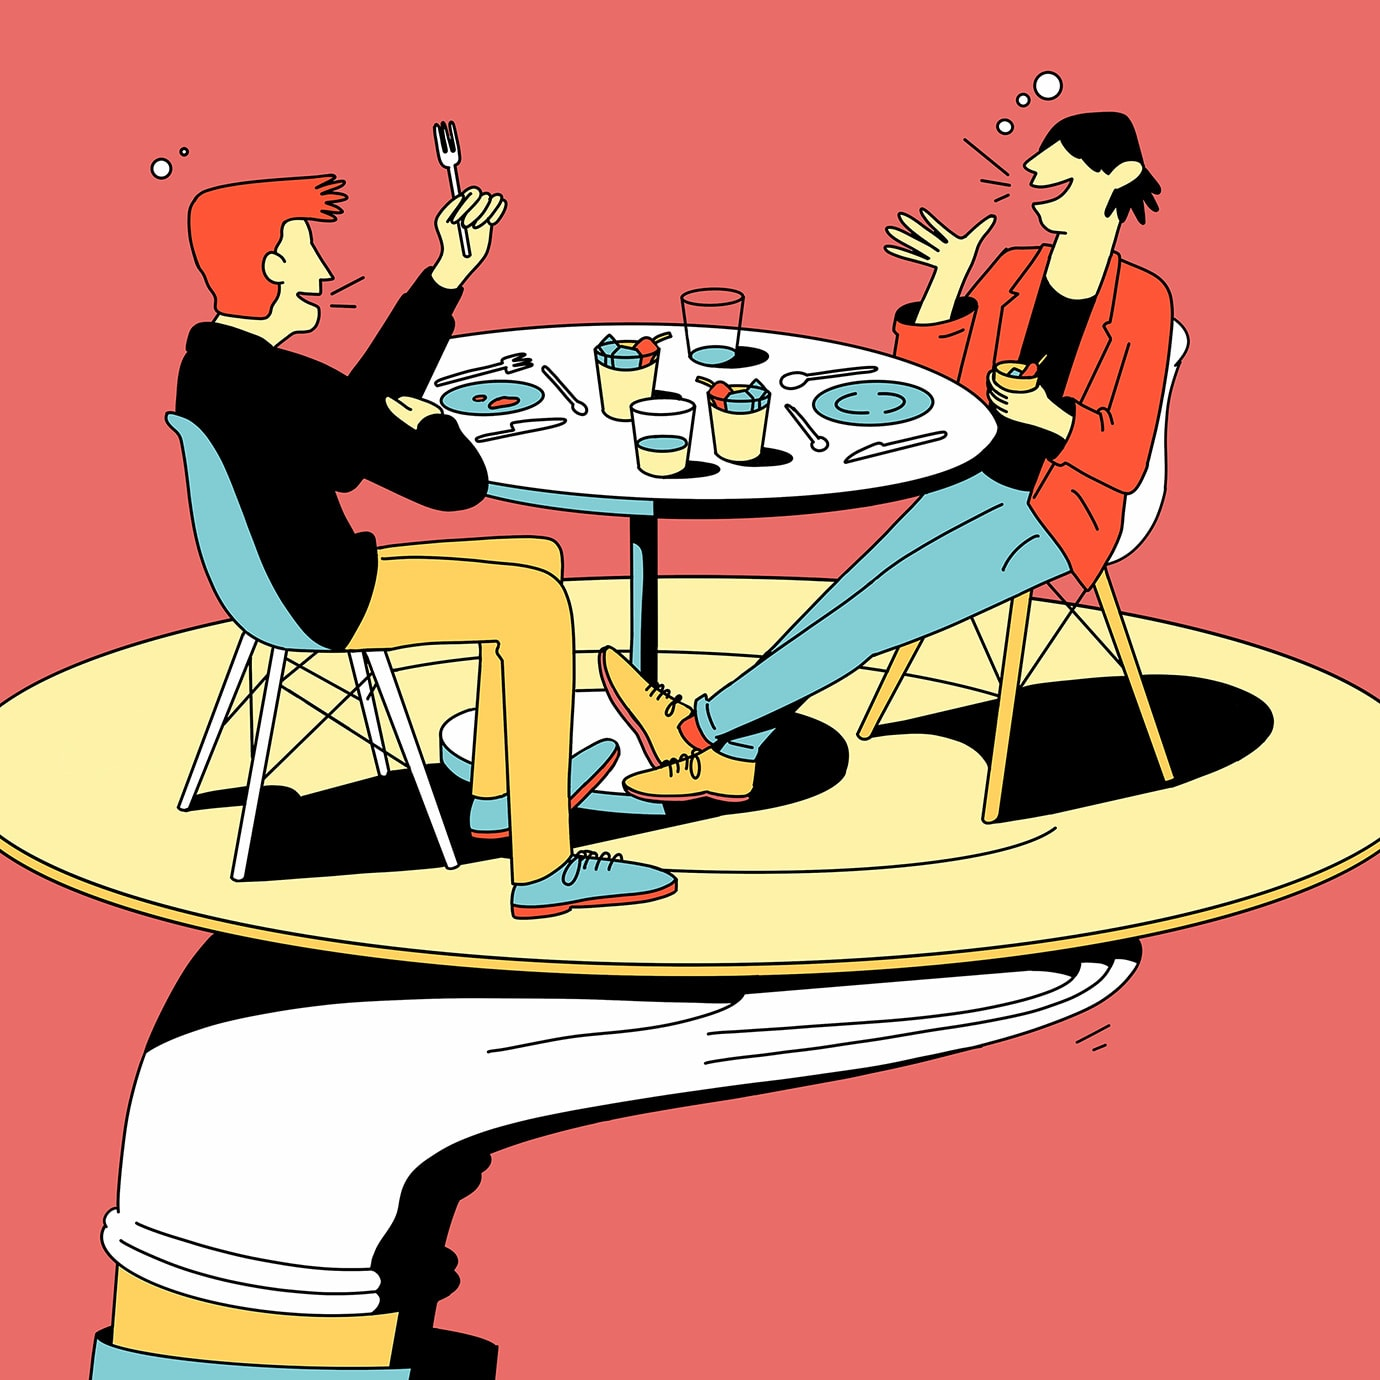 An illustration of two people eating at a table while themselves being served on a plate by a hand.